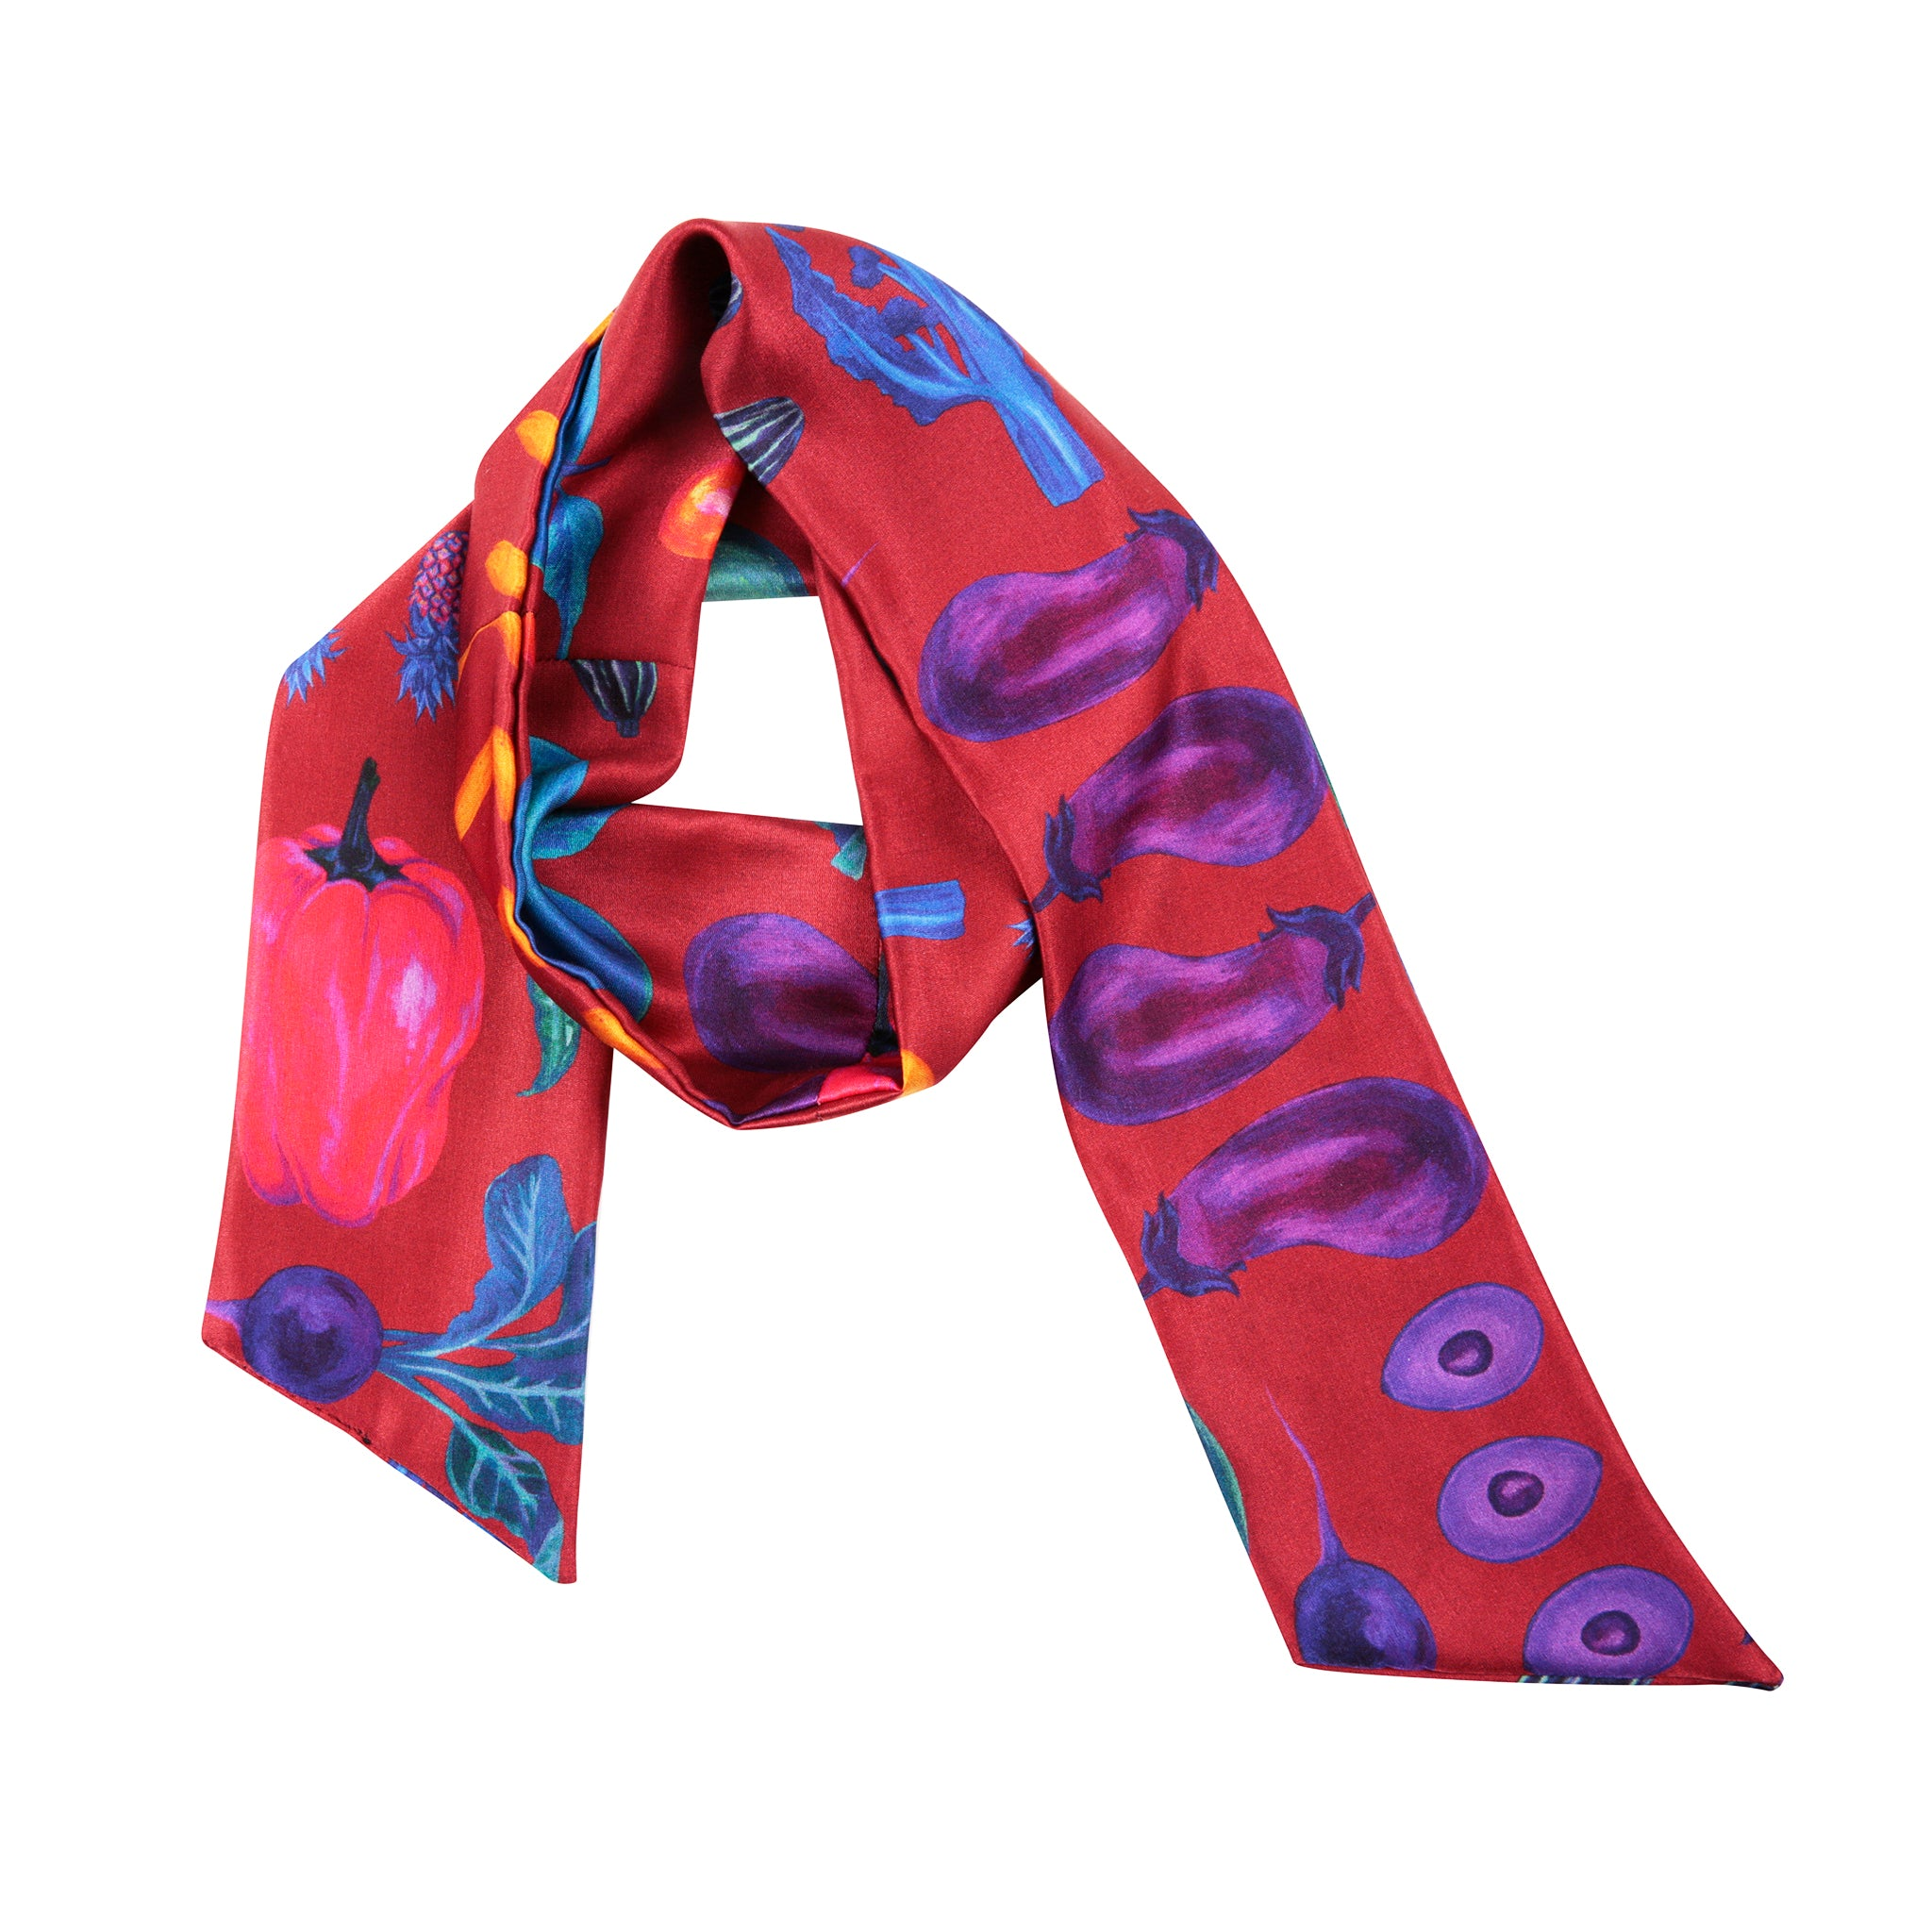 Airmiles Neck Scarf in Red